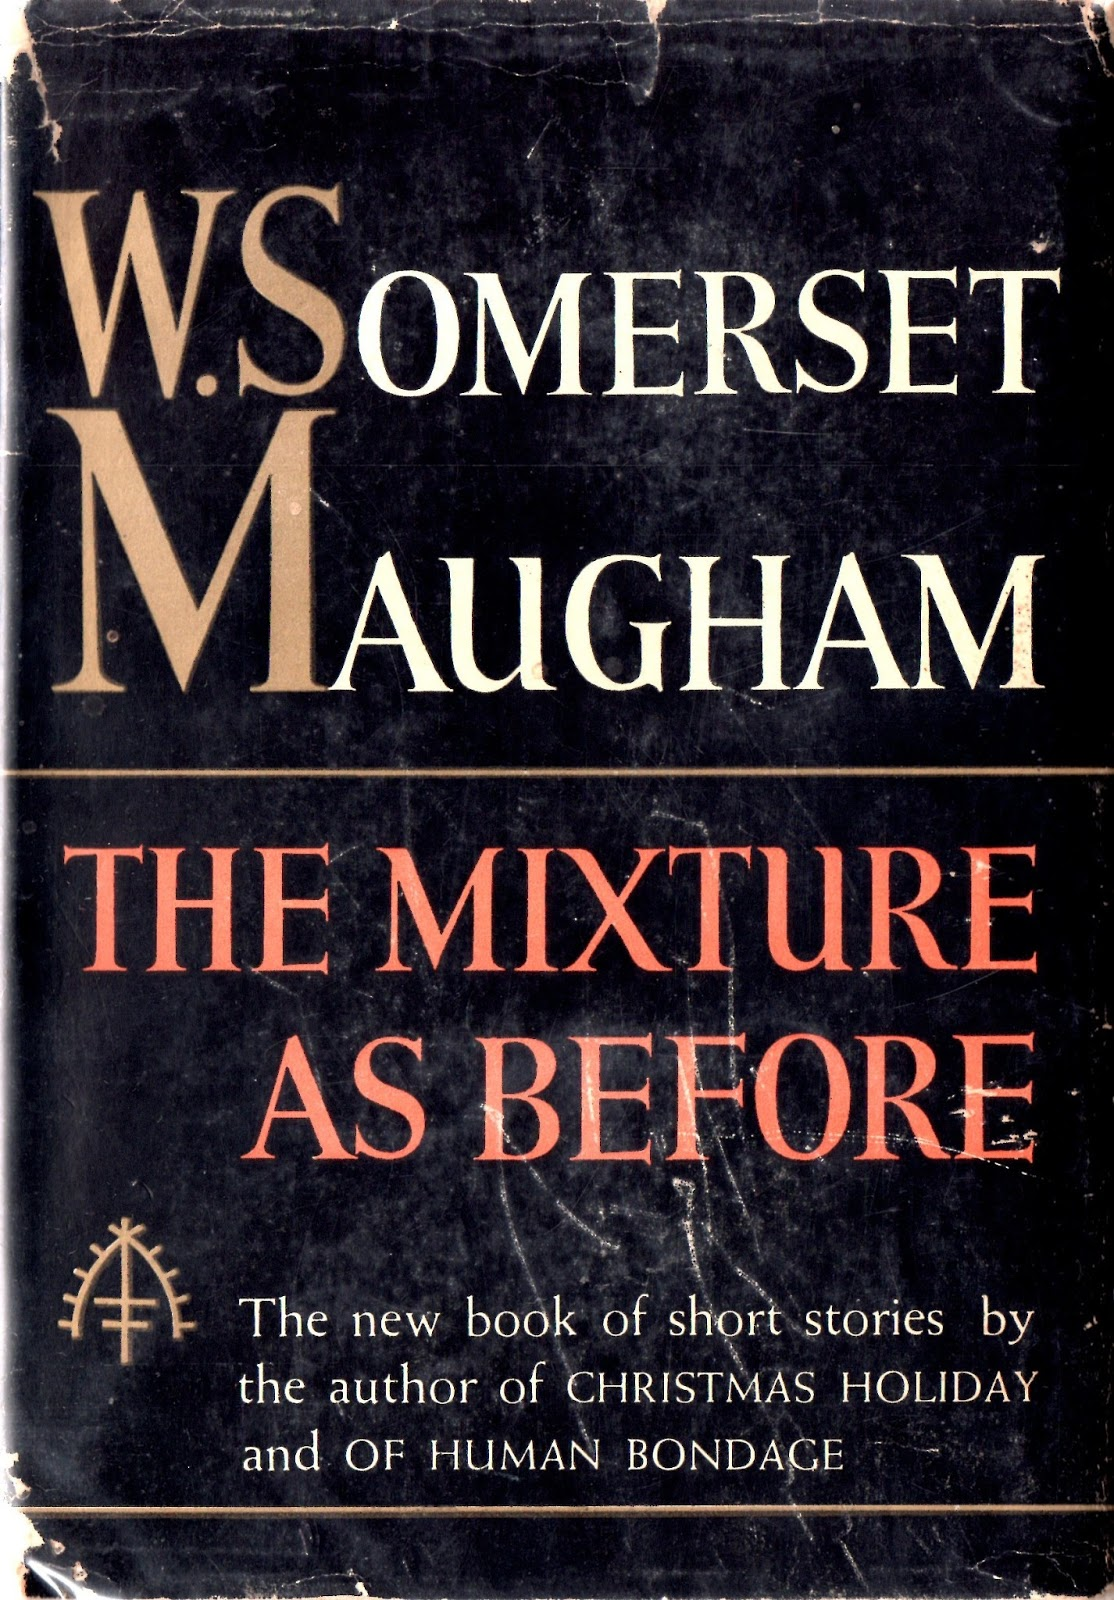 Explain the character of Thomas Wilsom in Somerset Maugham's